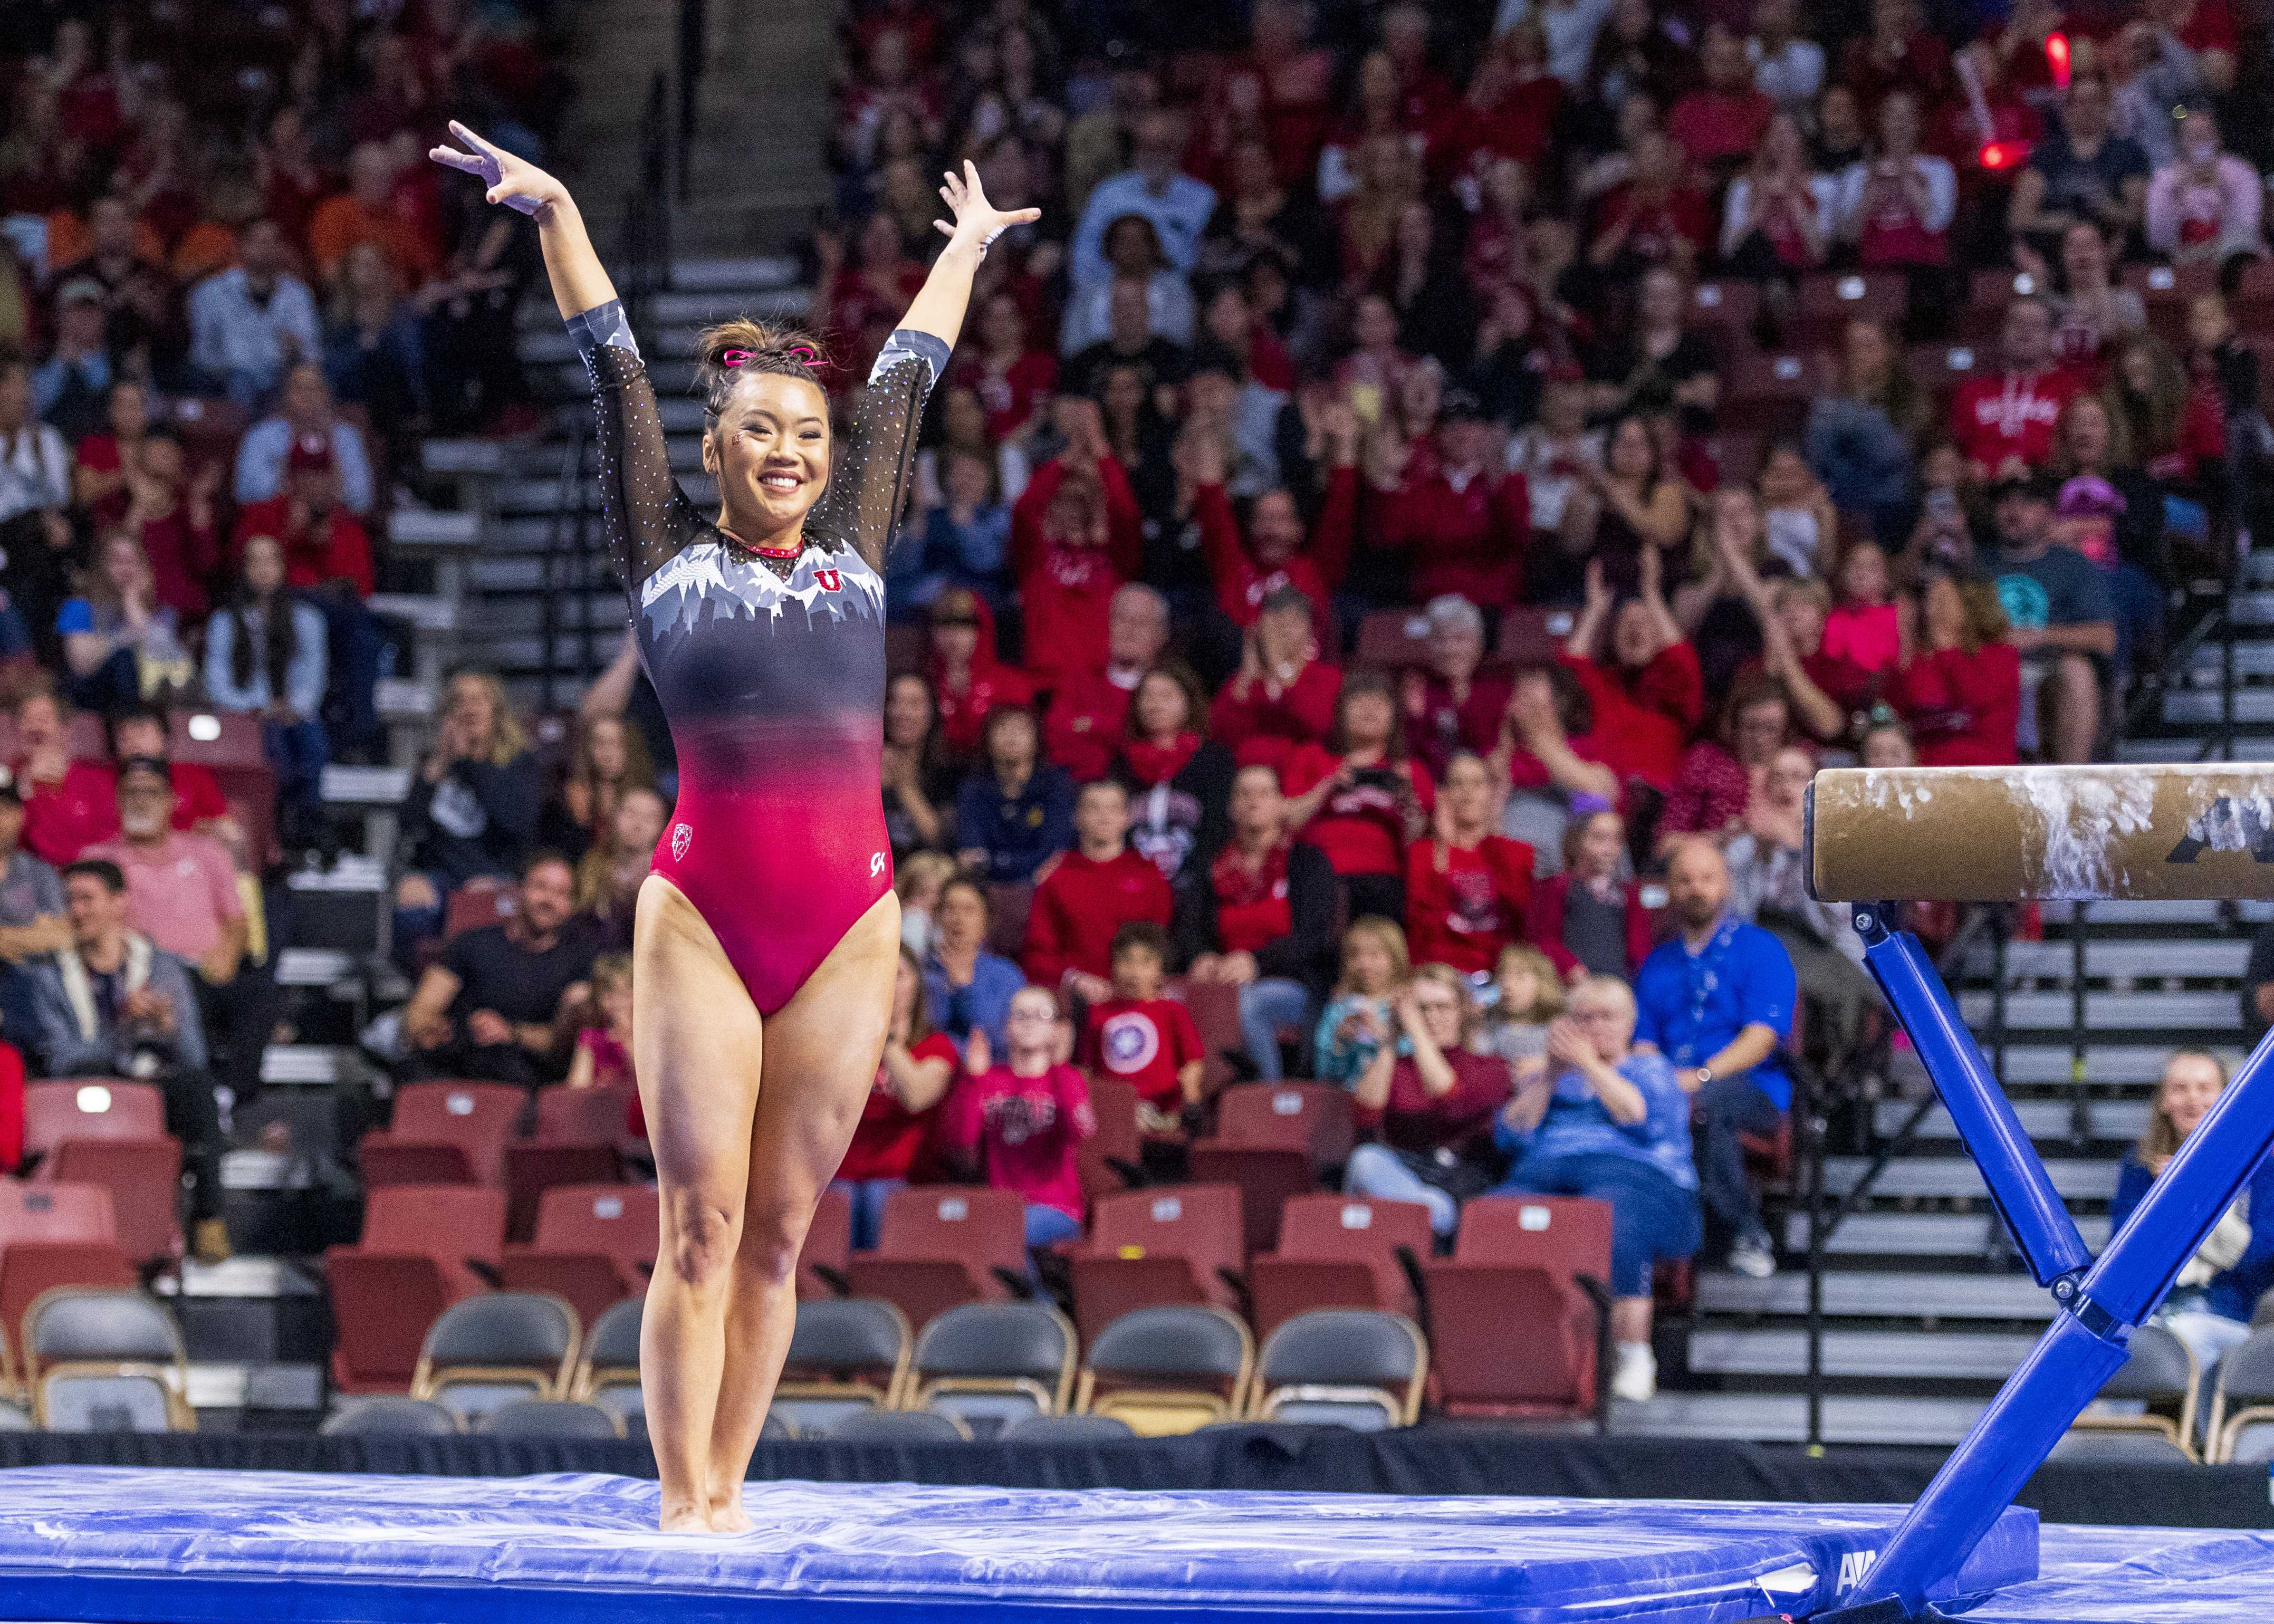 University of Utah women's gymnastics senior Kari Lee performs on the balance beam in the PAC 12 conference championship at the Maverik Center in Salt Lake City, Utah on Saturday, March 23, 2019.  (Photo by Kiffer Creveling | The Daily Utah Chronicle)